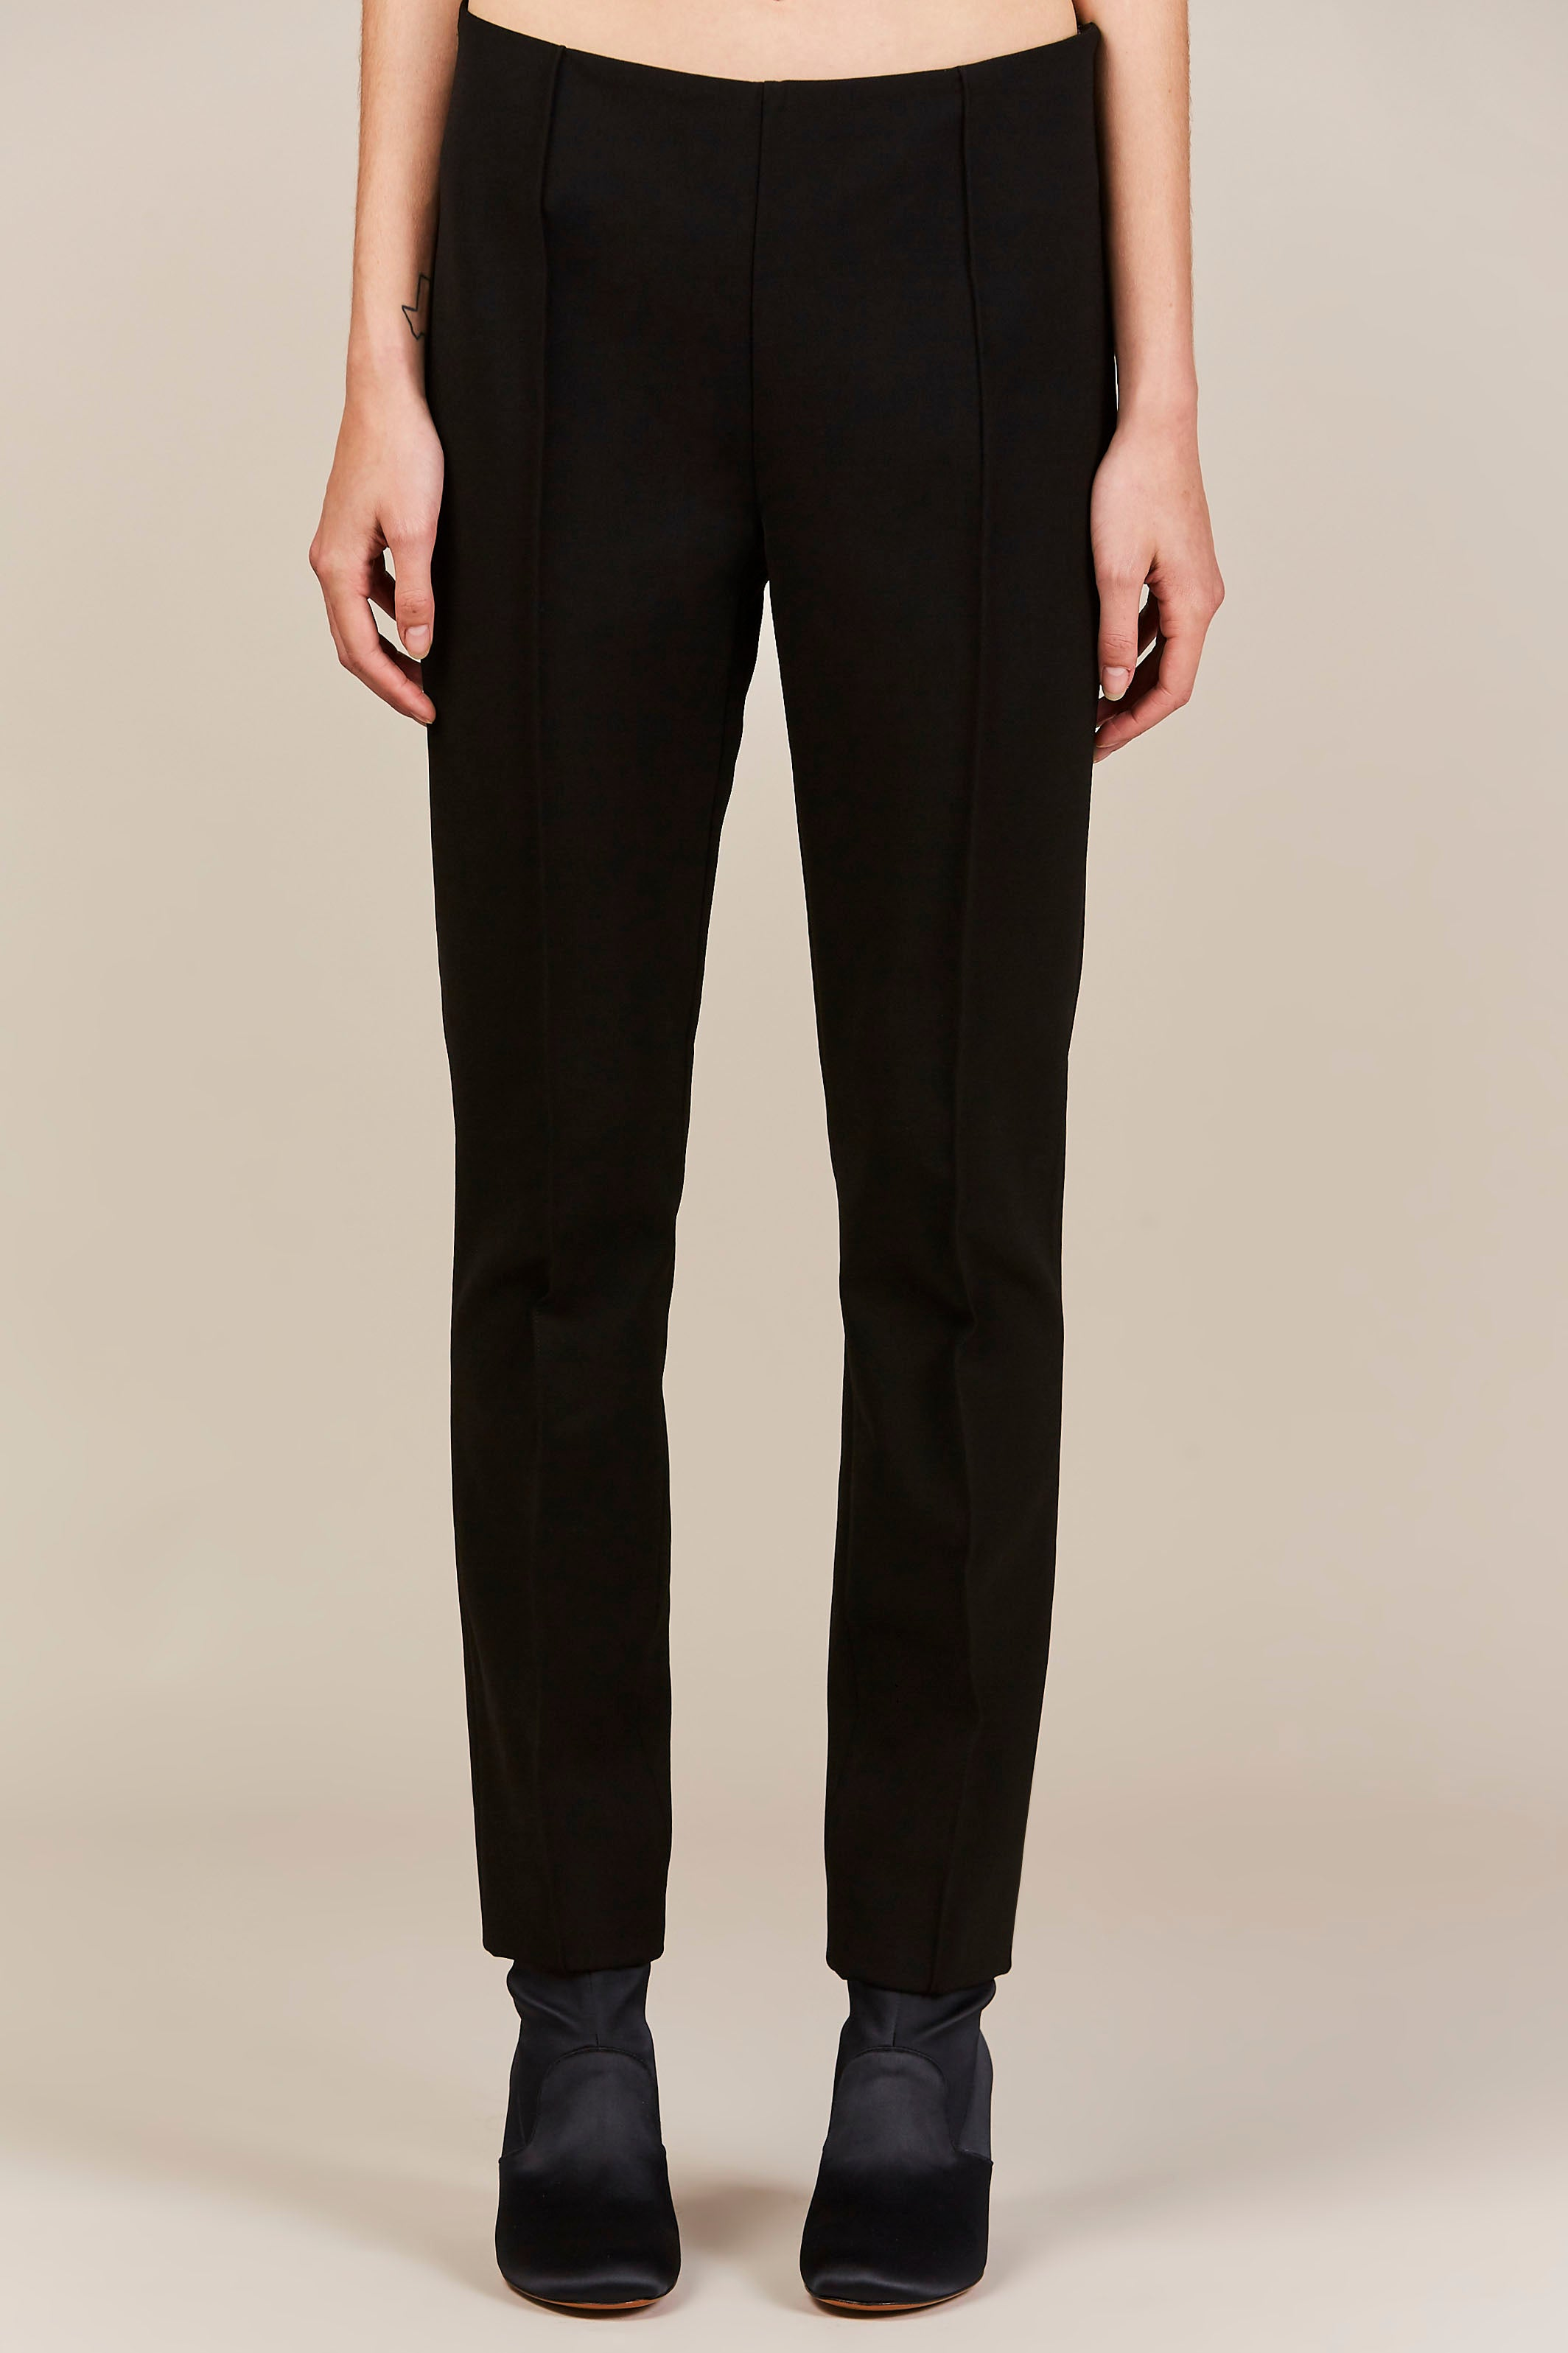 Shopping Online Original Toteme Cruz trousers Discount In China Outlet New Arrival nK7Gp